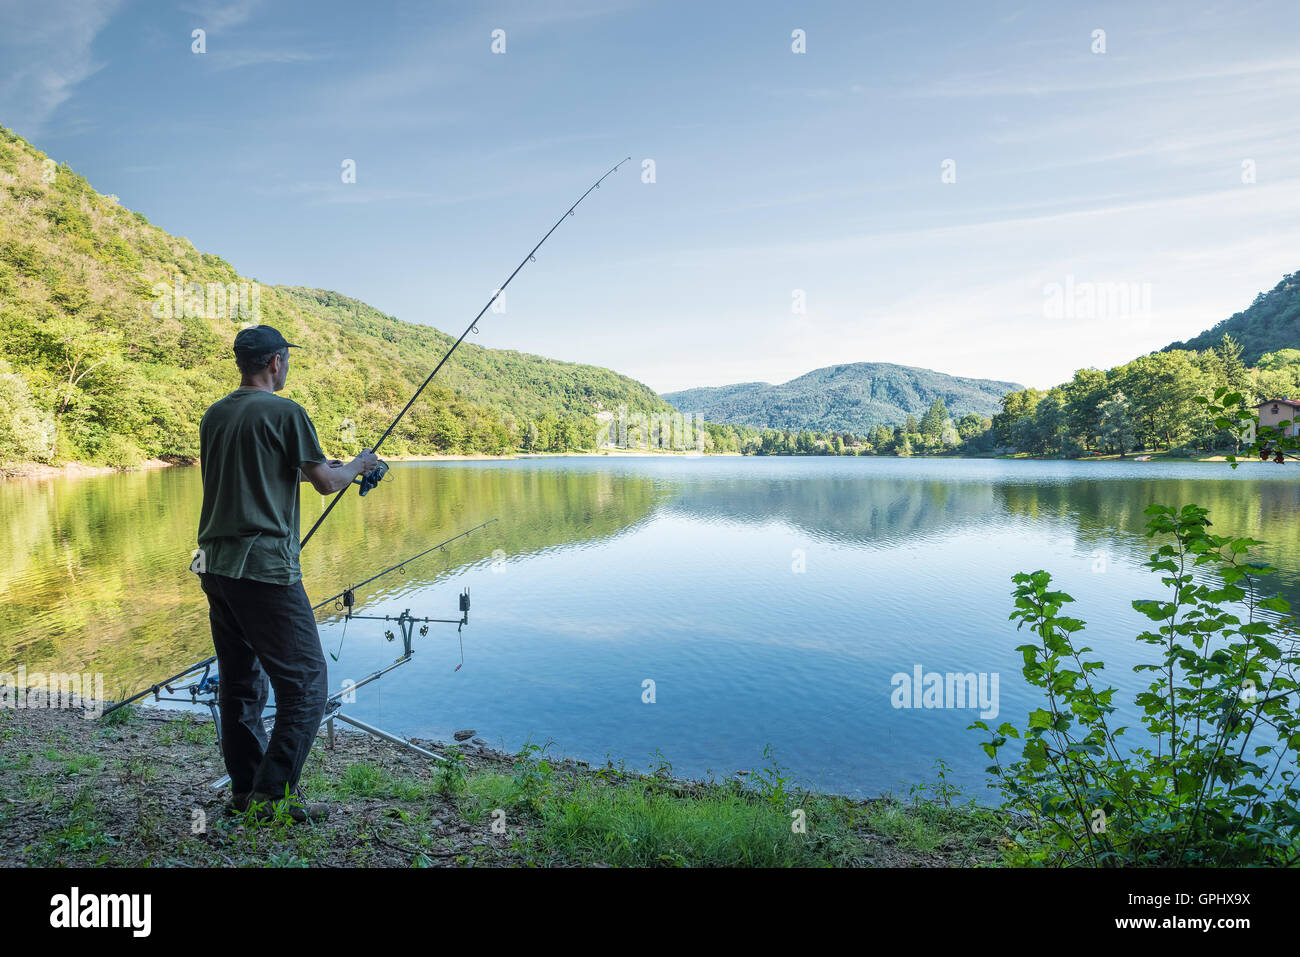 Fishing adventures. Fisherman is fishing on the banks of a lake - Stock Image